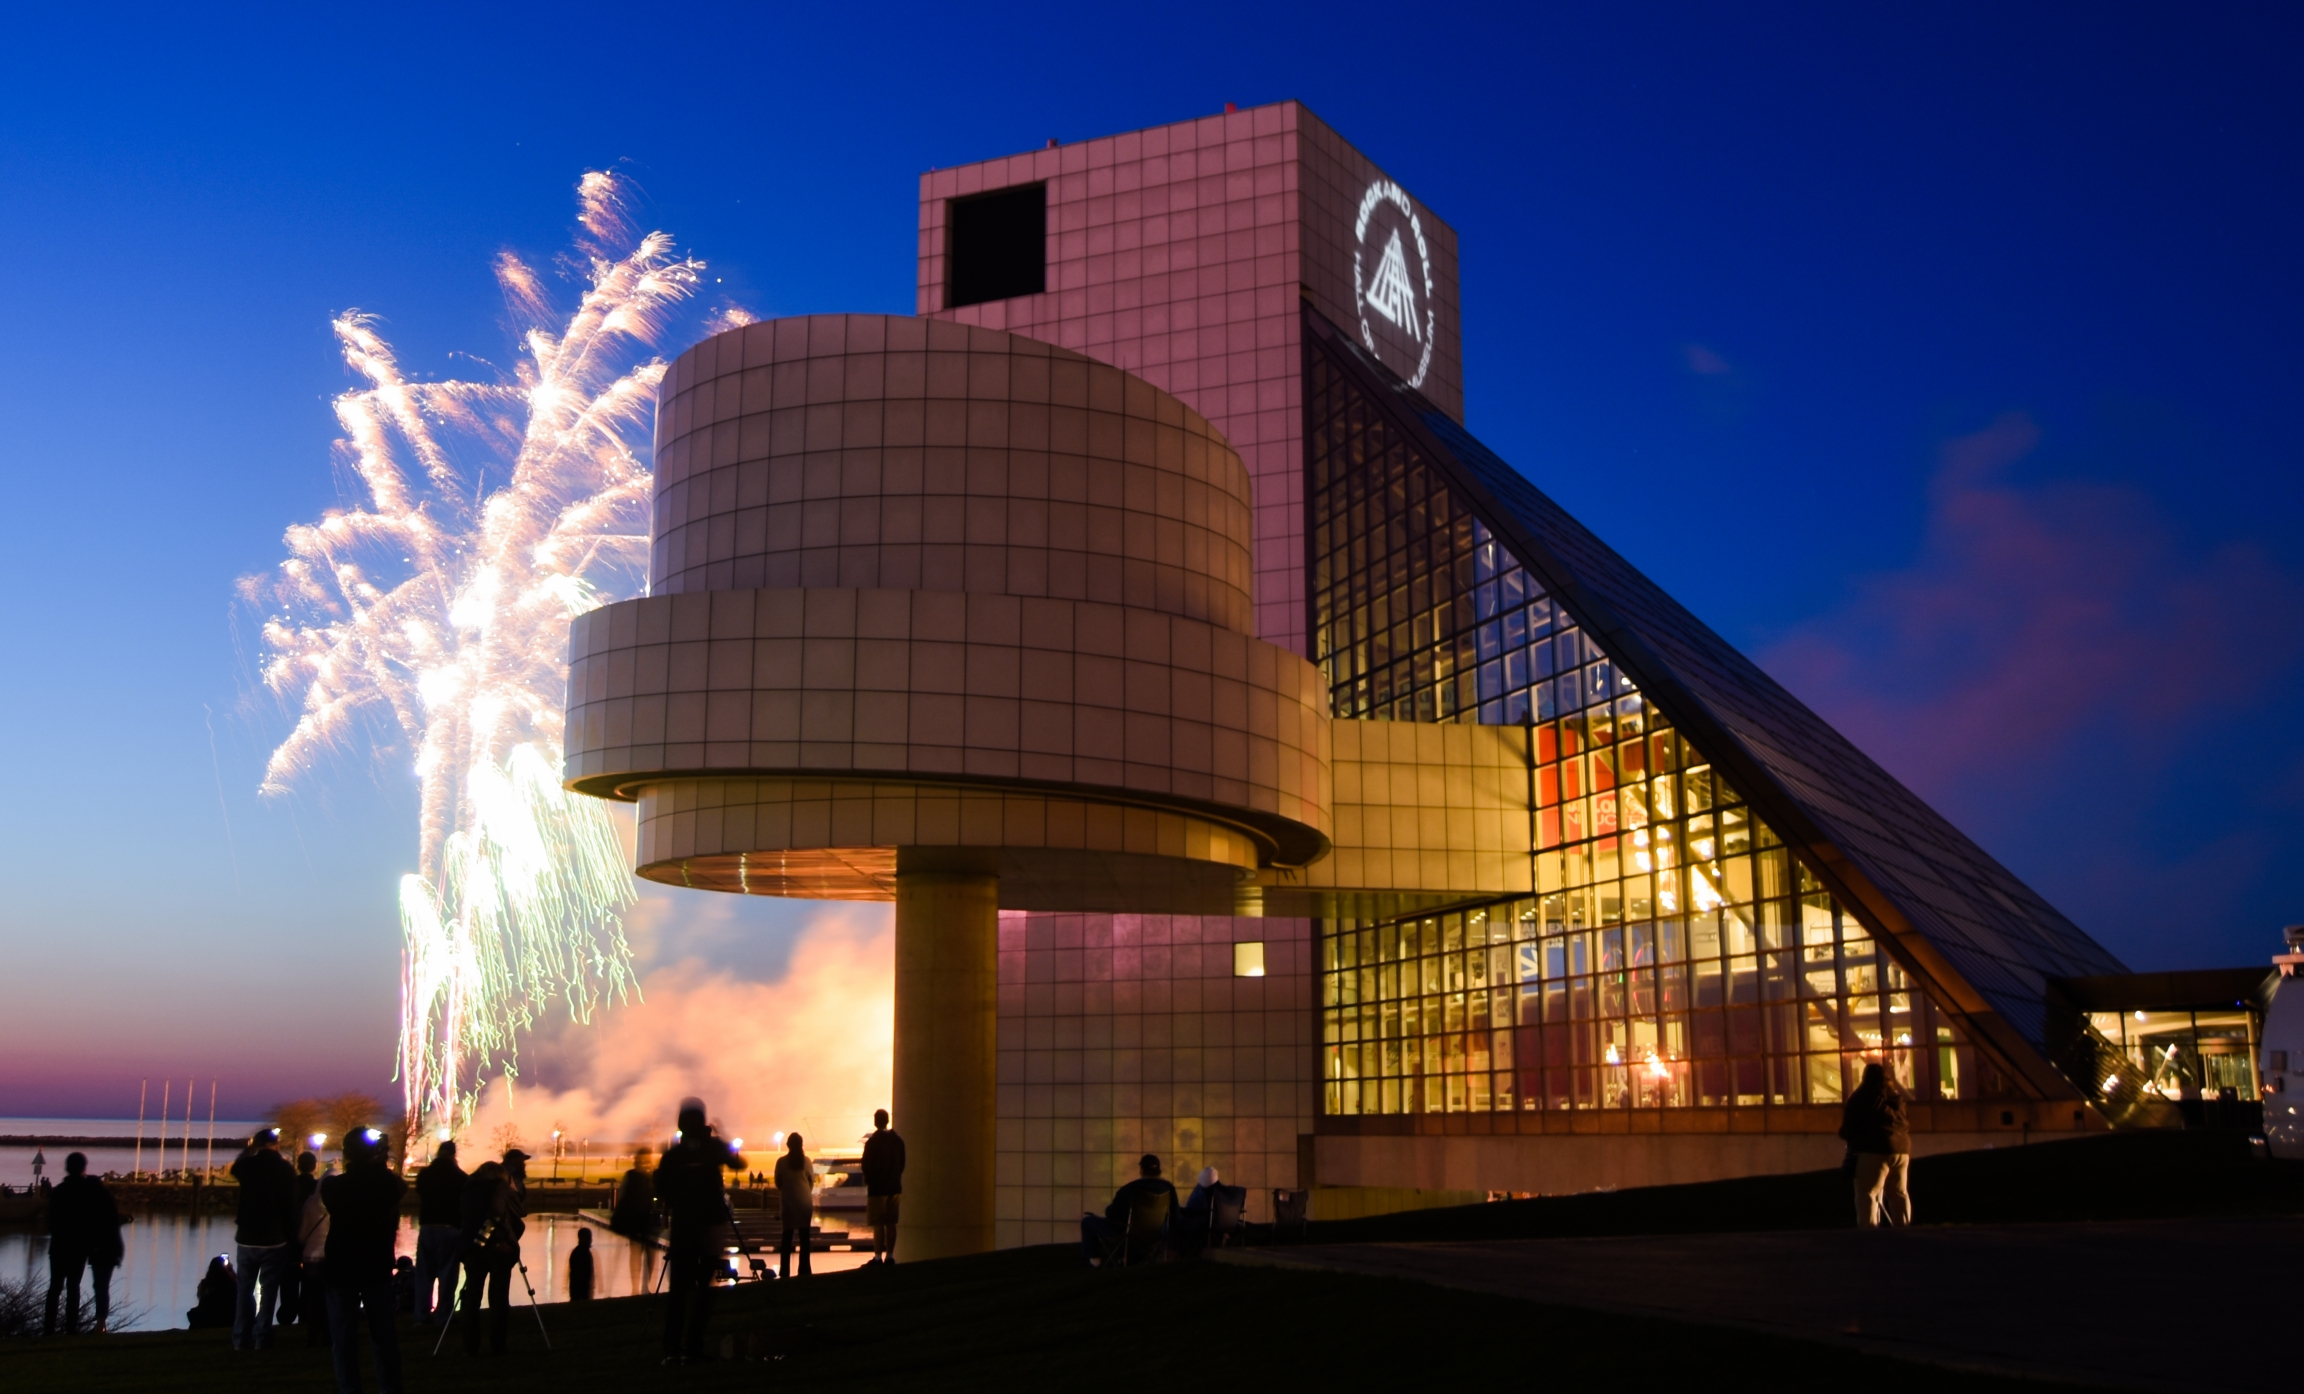 Fireworks flash next to the Rock and Roll Hall of Fame at night.